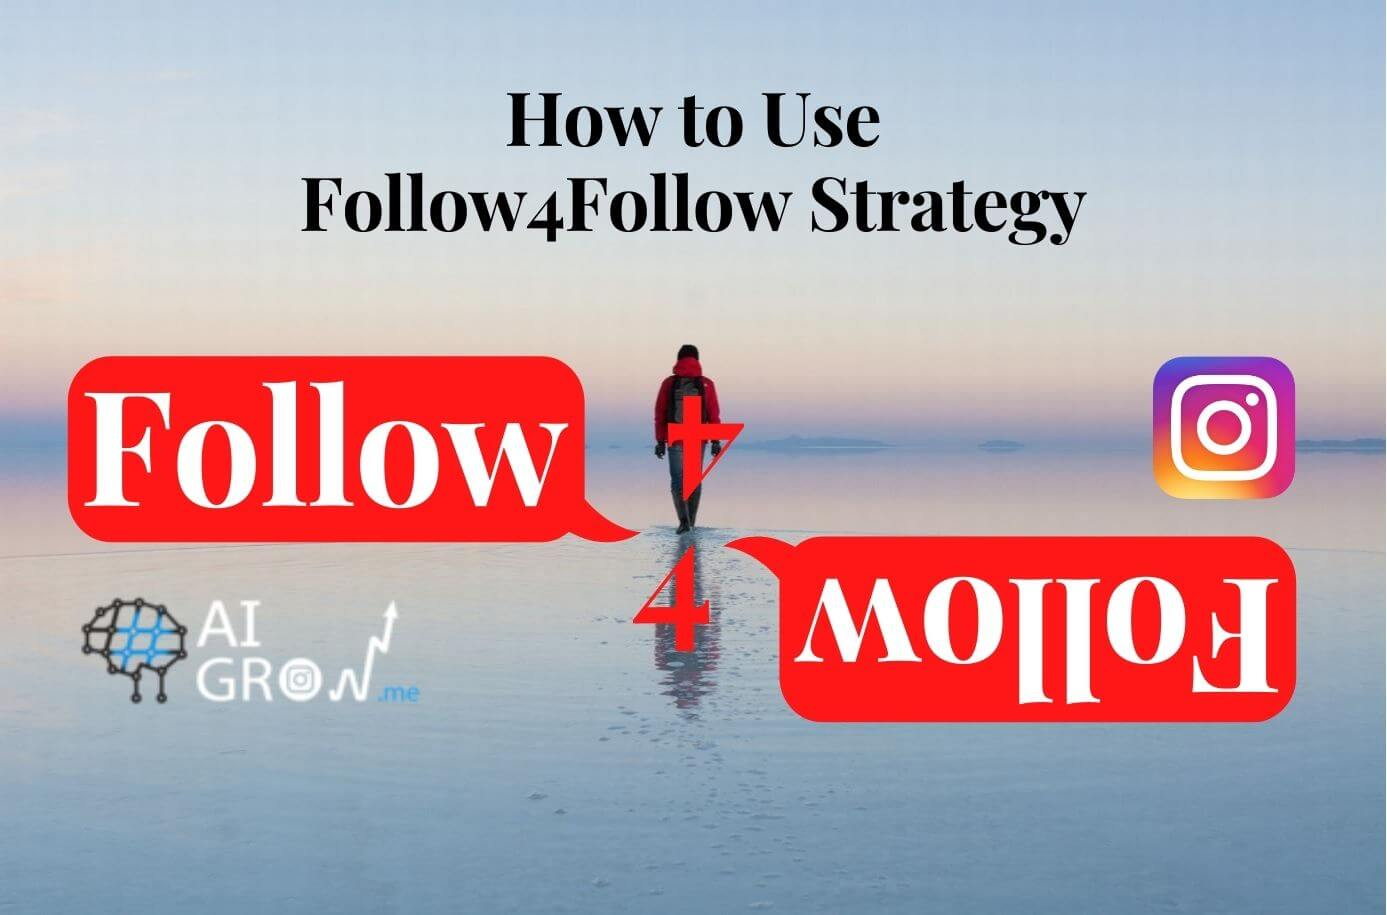 How to Use Follow4Follow Strategy to Gain IG Followers in 2021